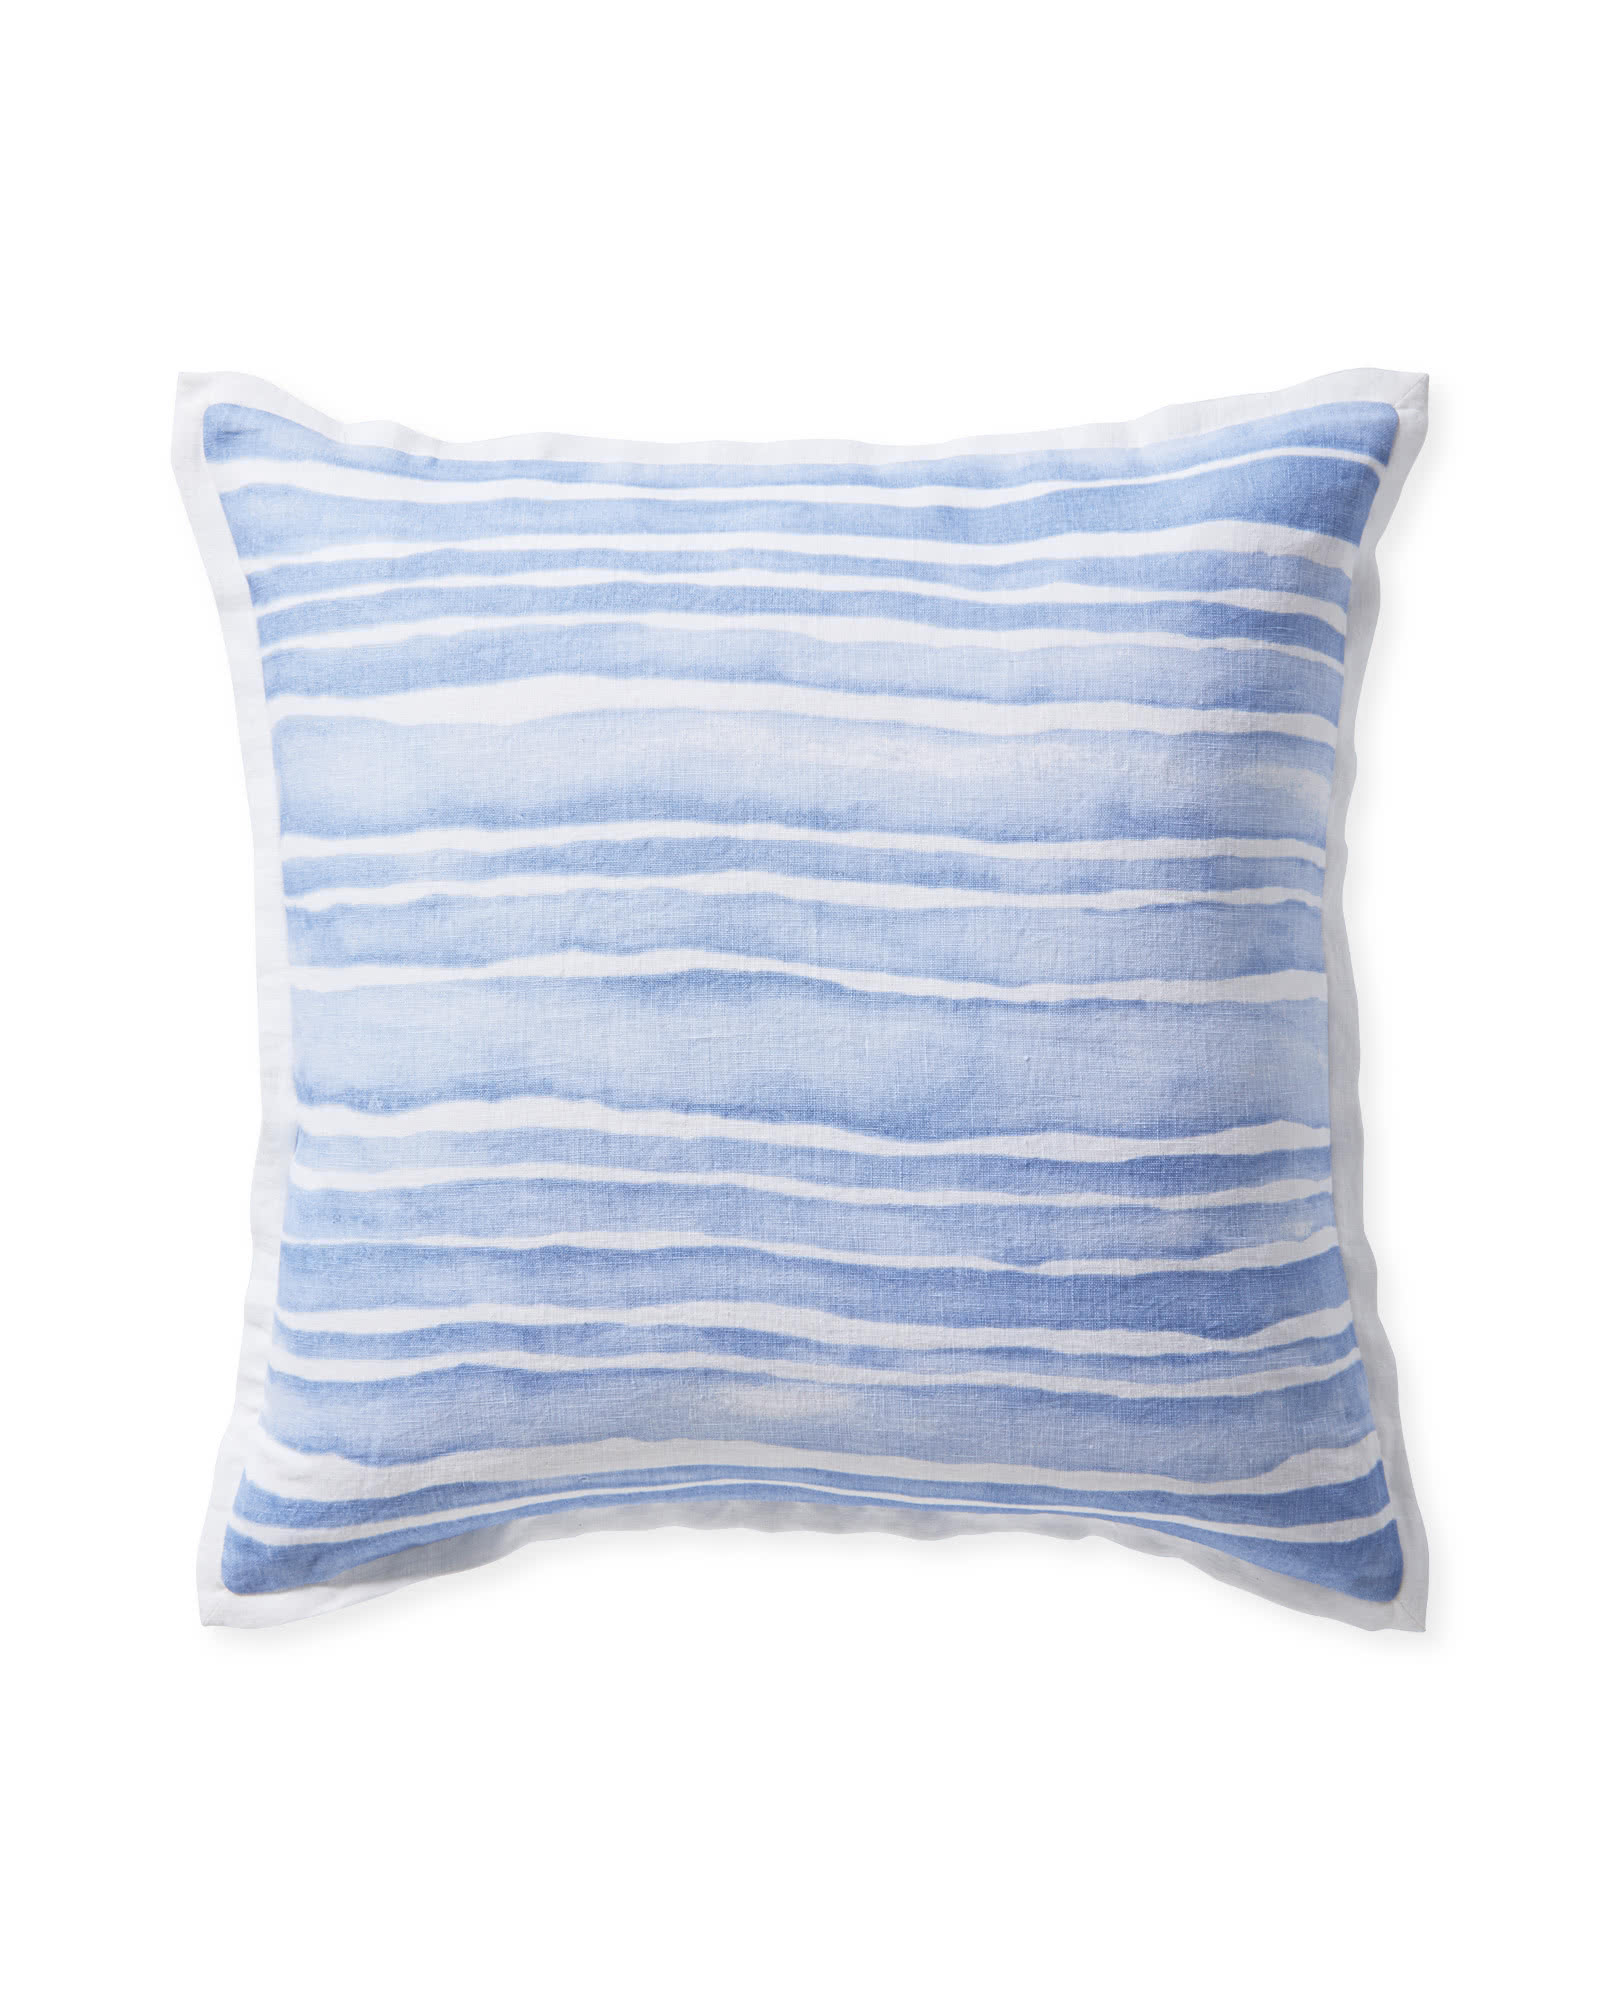 Cove Pillow Cover, French Blue